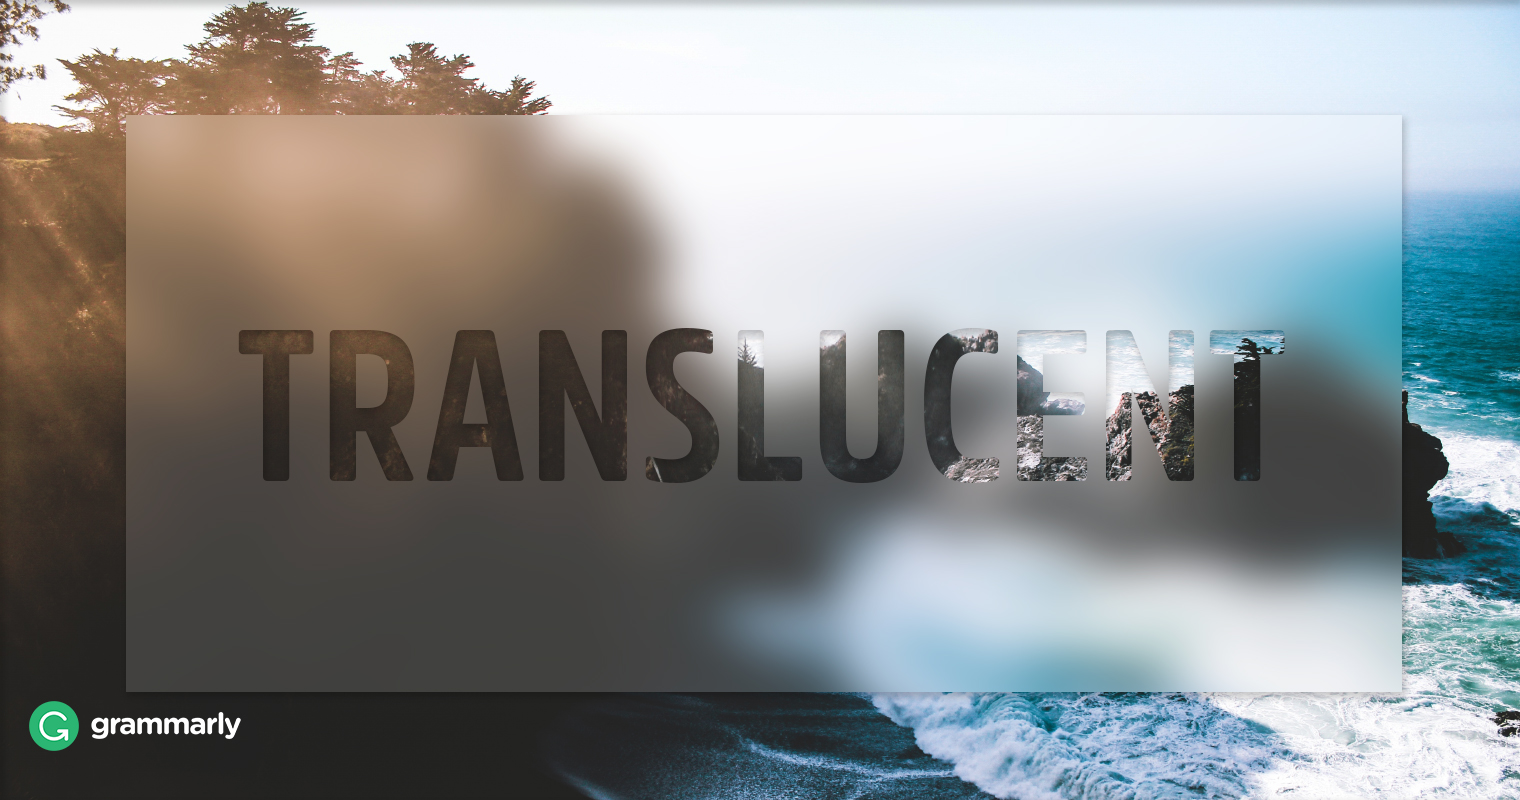 translucent [trans-lu´sent] slightly penetrable by light rays. trans·lu·cent (trans-lū'sent), Partially transparent; permitting light to pass through diffusely. [L. translucens, fr. trans- + luceo, to shine through] translucent [-lo̅o̅′sənt] Etymology: L, trans, across, lucens, shining pertaining to a medium through which light can pass in a.